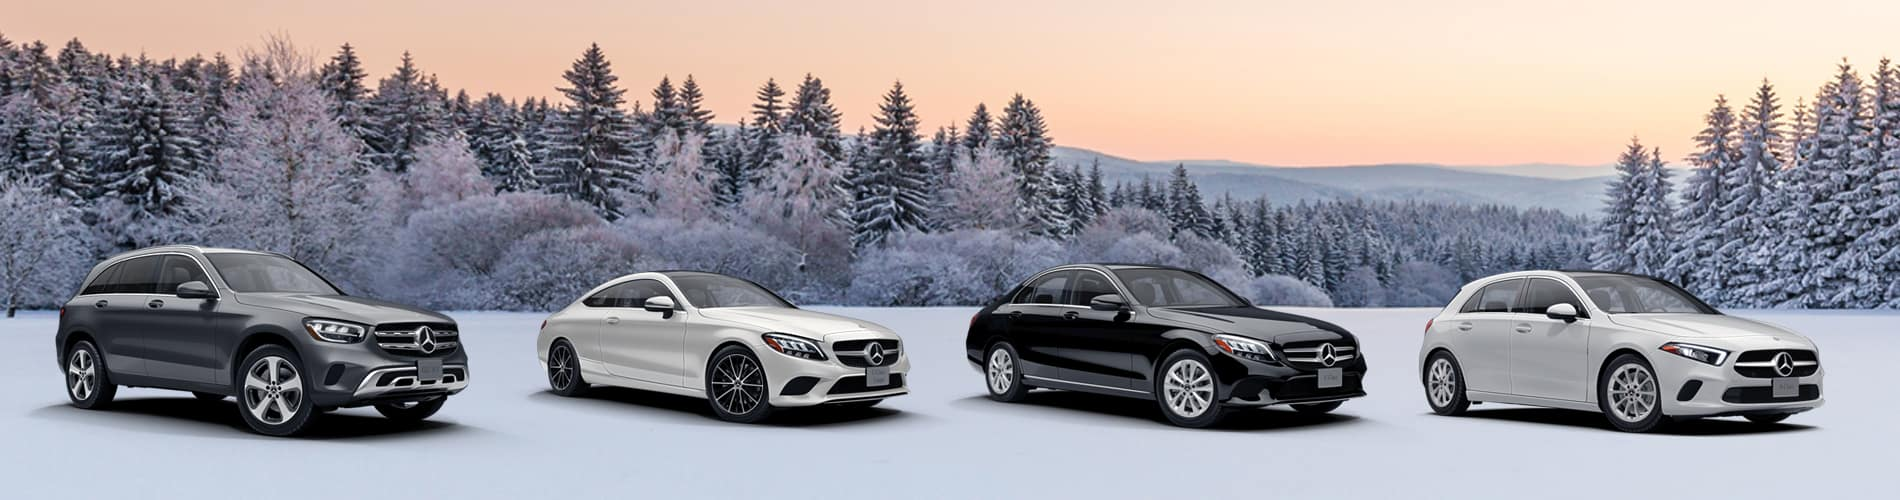 Outstanding Clearance offers on New 2019 Mercedes-Benz vehicles in London Ontario from the New Vehicle Department at Mercedes-Benz London.